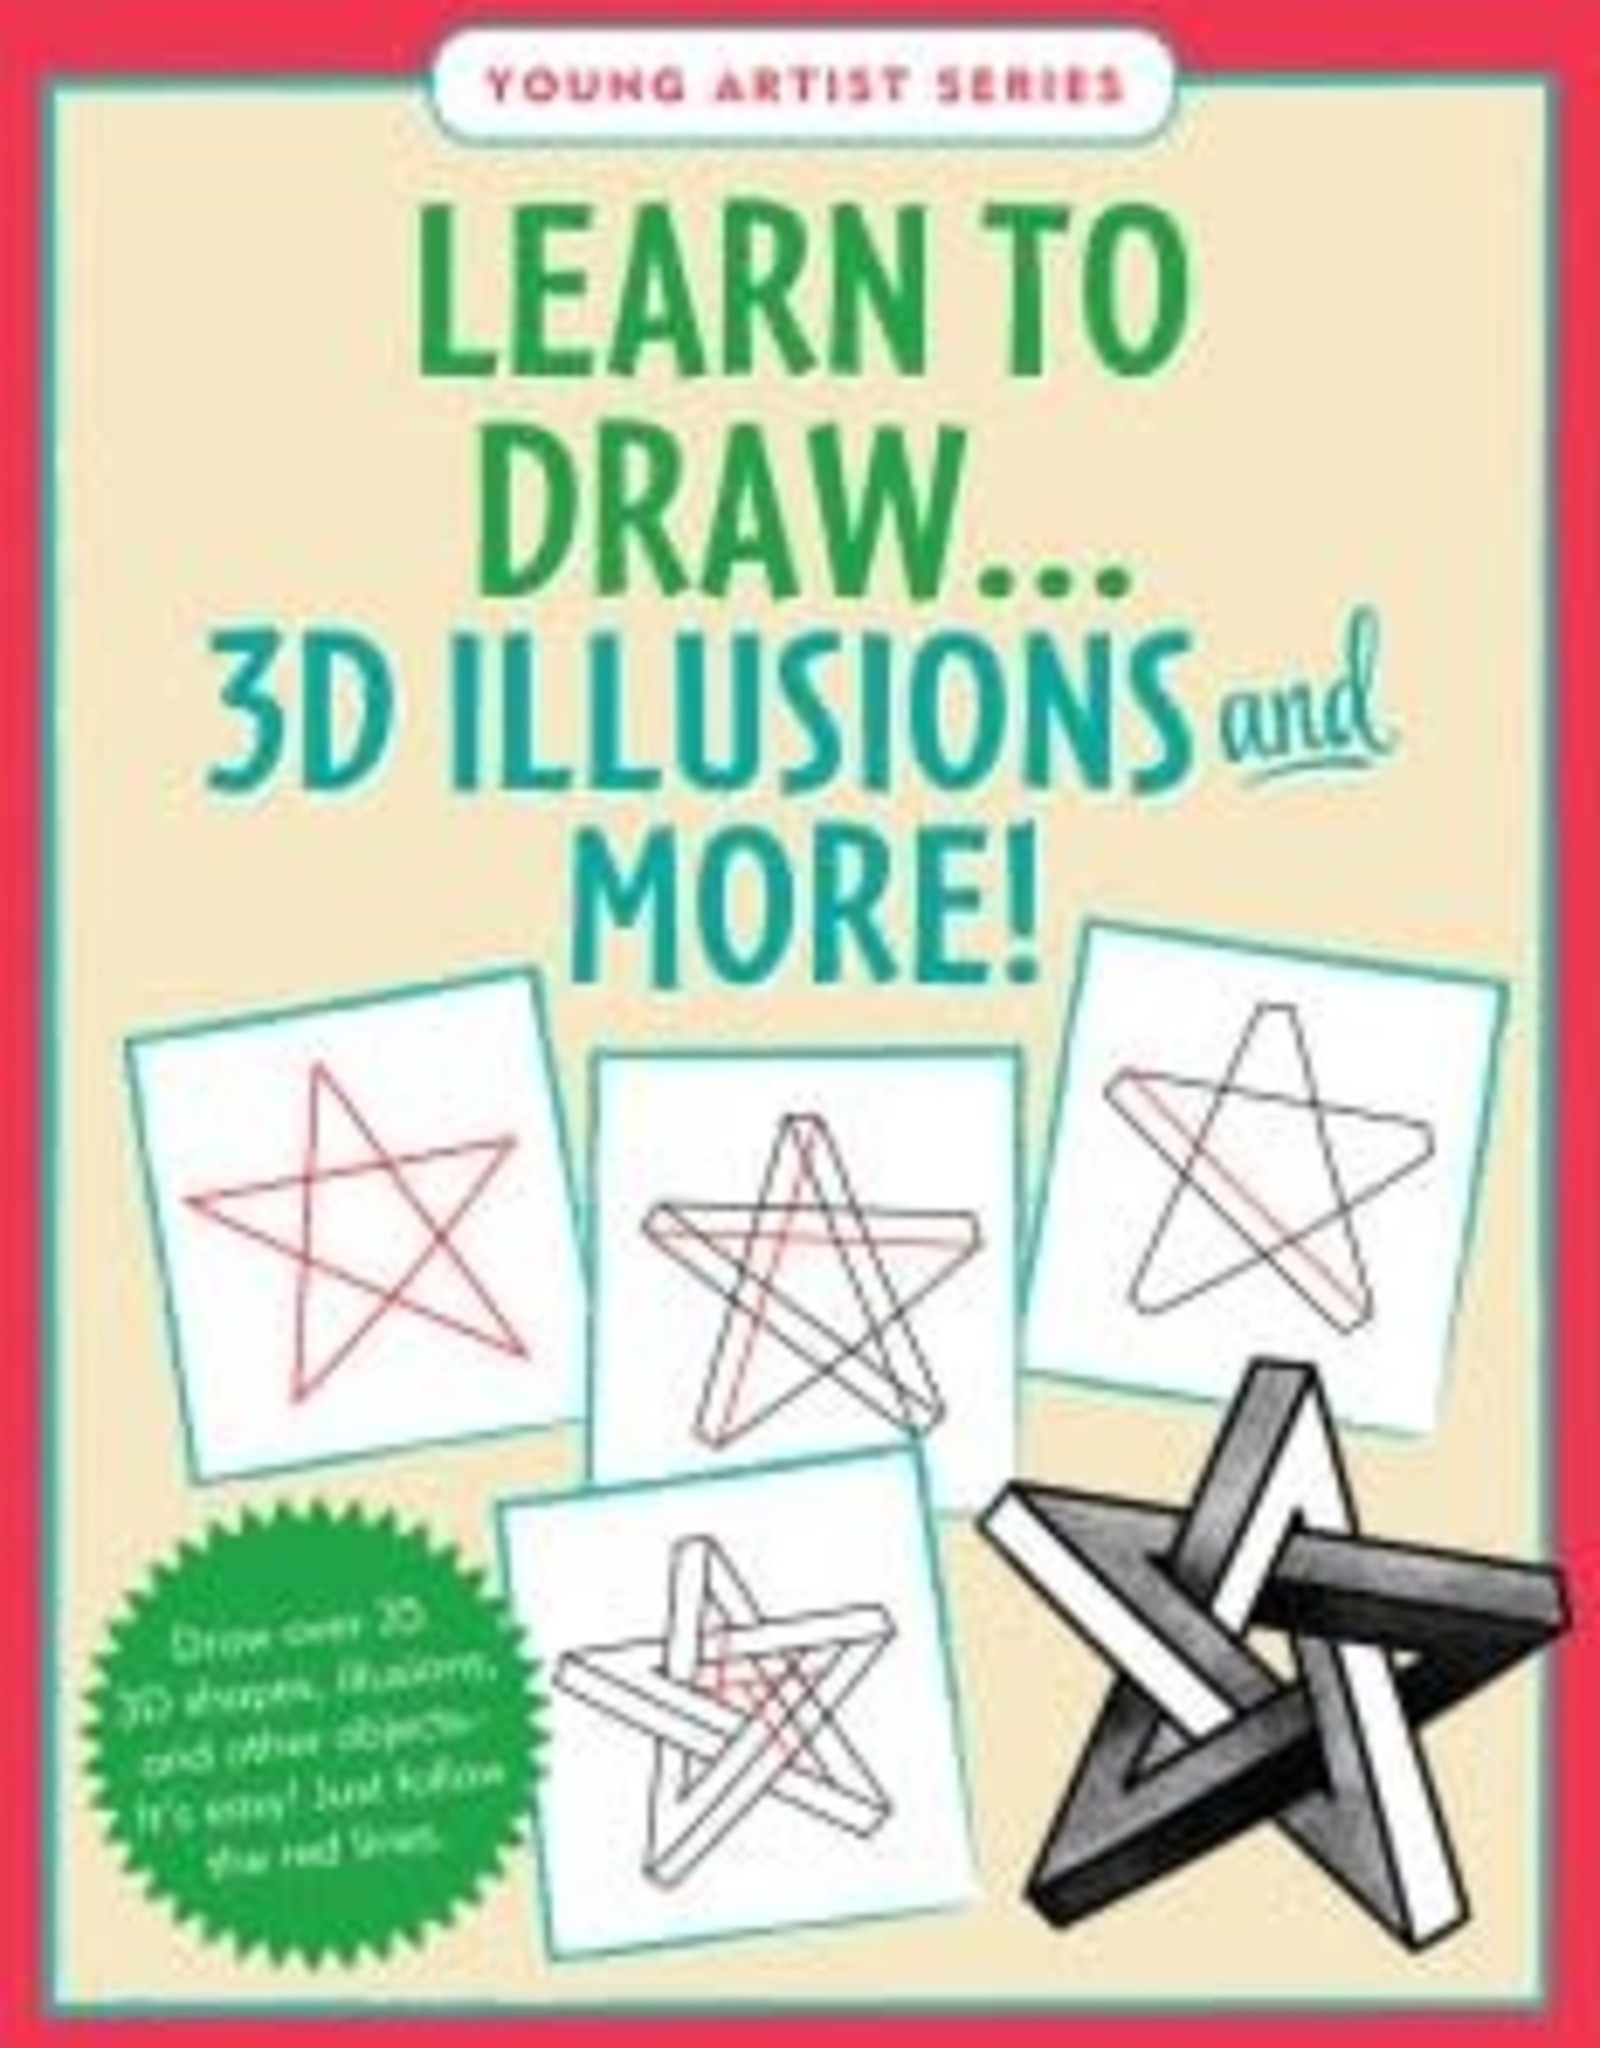 Peter Pauper Press LEARN TO DRAW 3D ILLUSIONS AND MORE